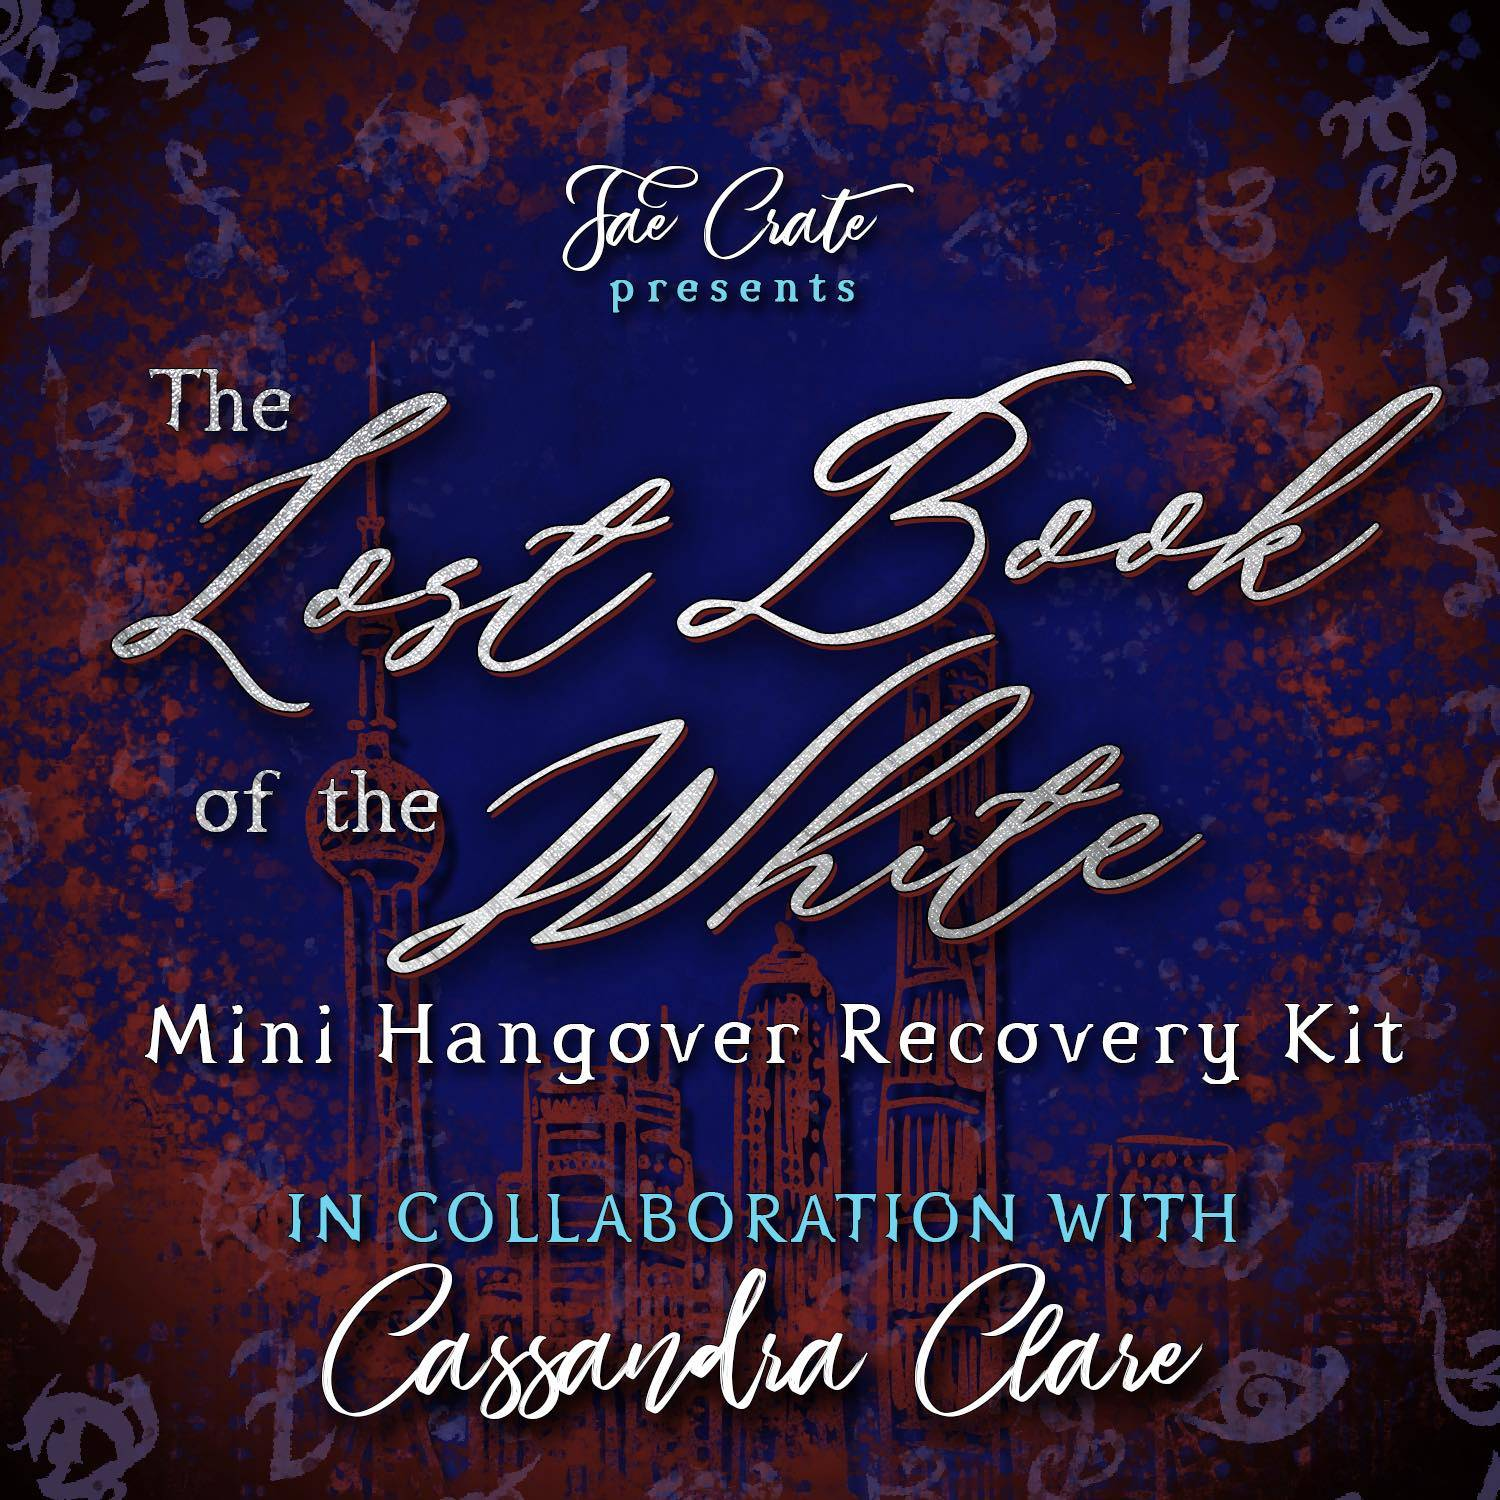 Fae Crate Presents The Lost Book of the White Mini Hangover Recovery Kit in Collaboration with Cassandra Clare